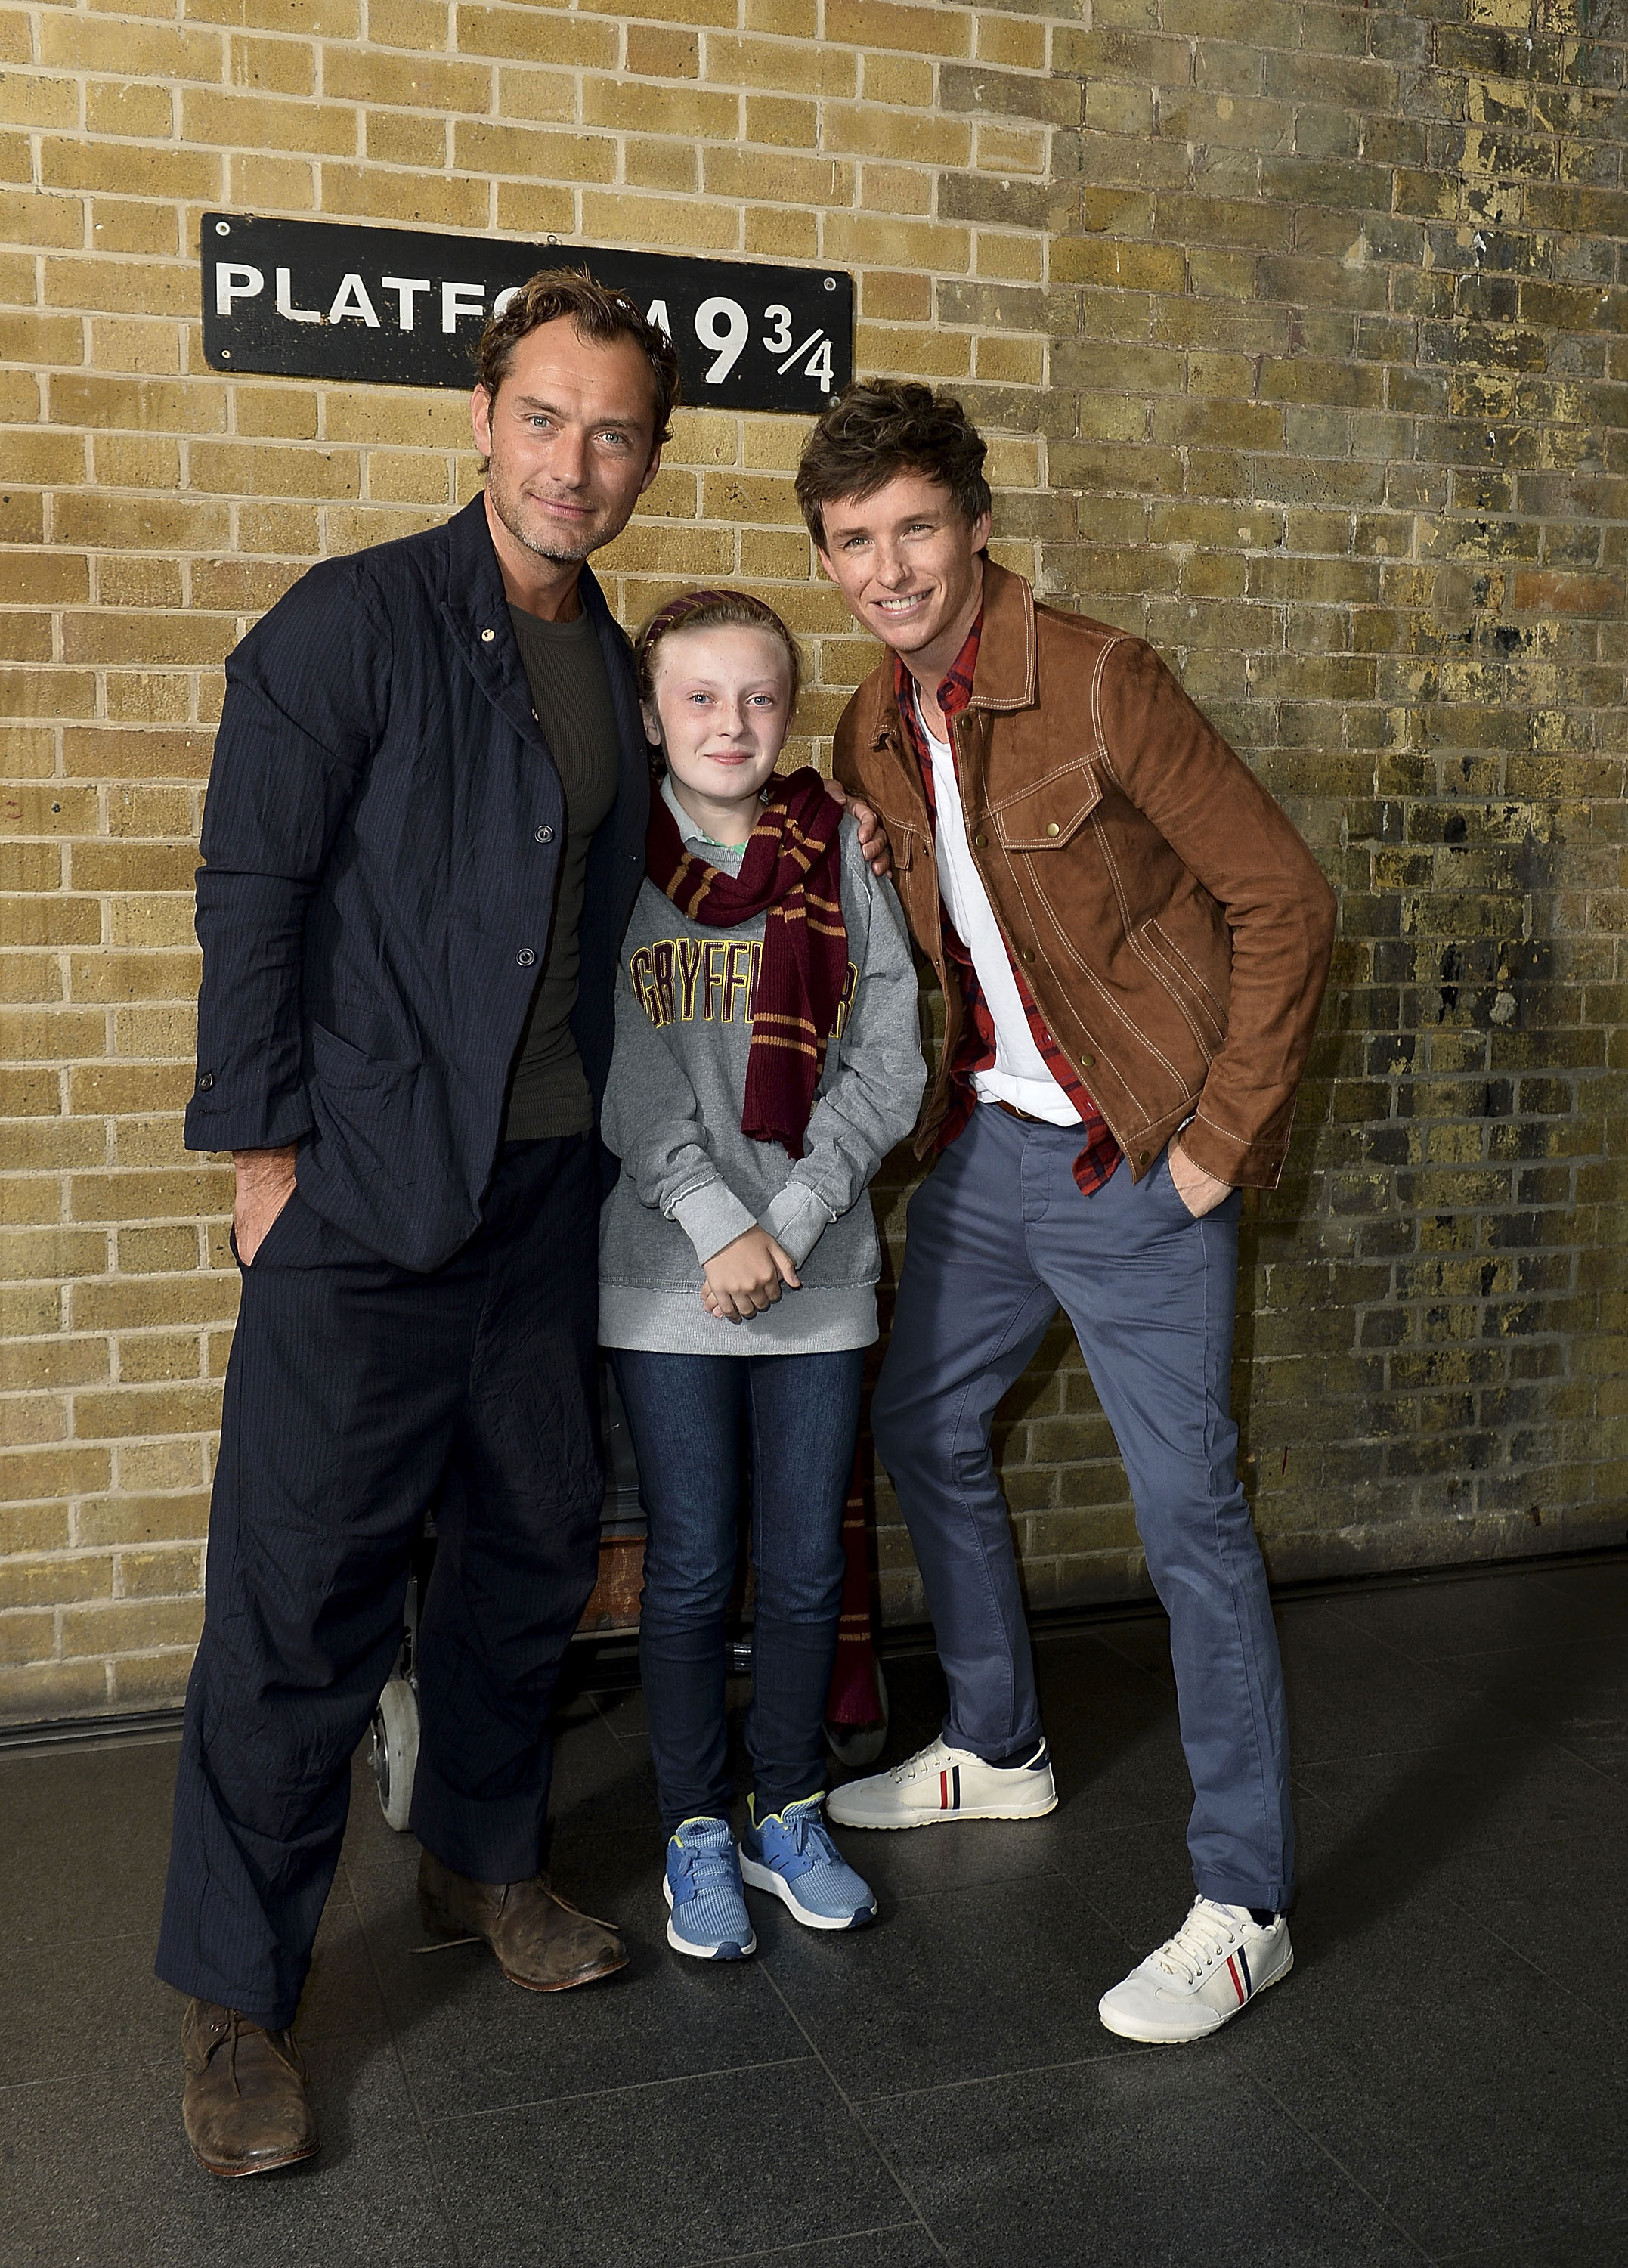 A lucky little Gryffindor gets her photo taken with Law and Redmayne at Platform 9 3/4.